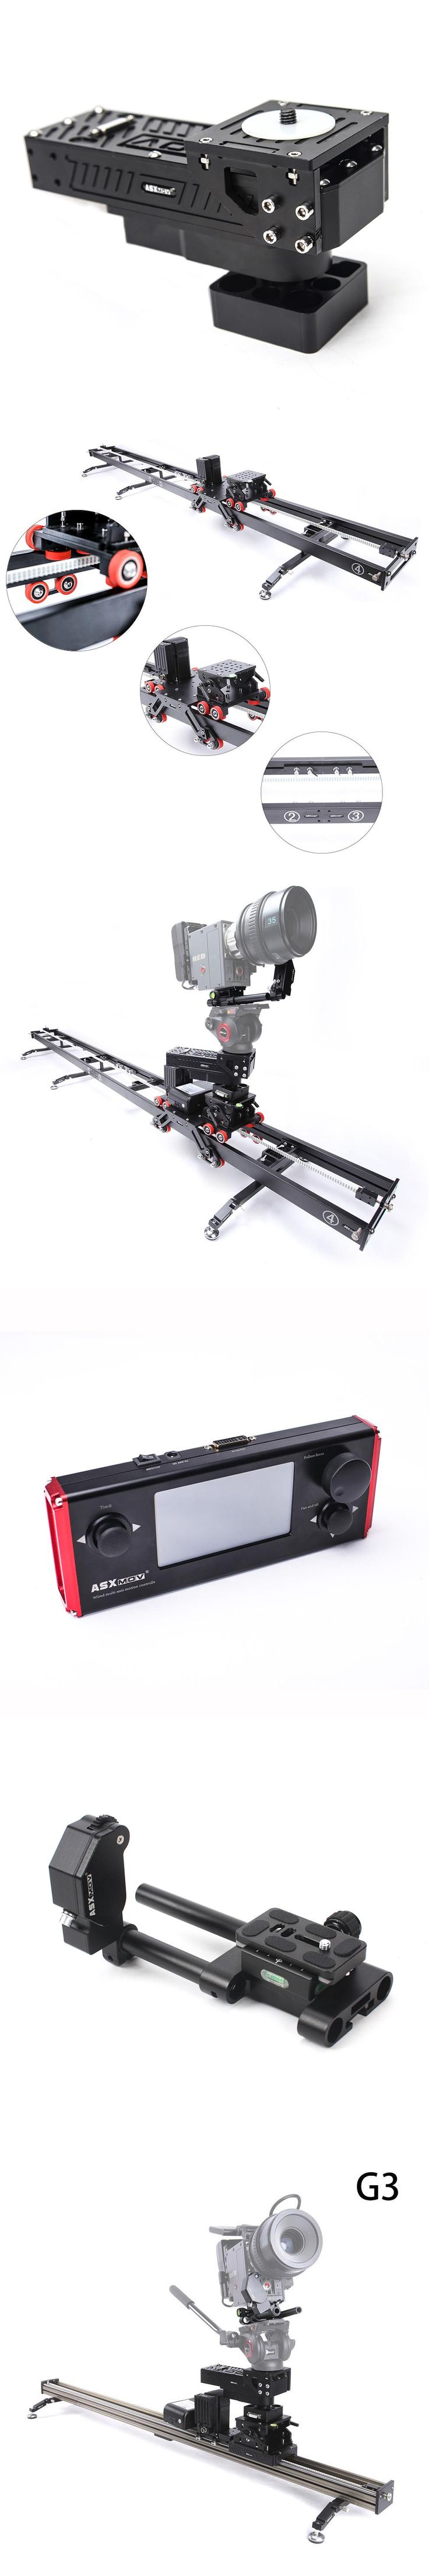 ASXMOV-G3 Allum Wired Controlled timelapse Photography motorized Video Slider high speed DSLR Camera slider for Sony for Canon